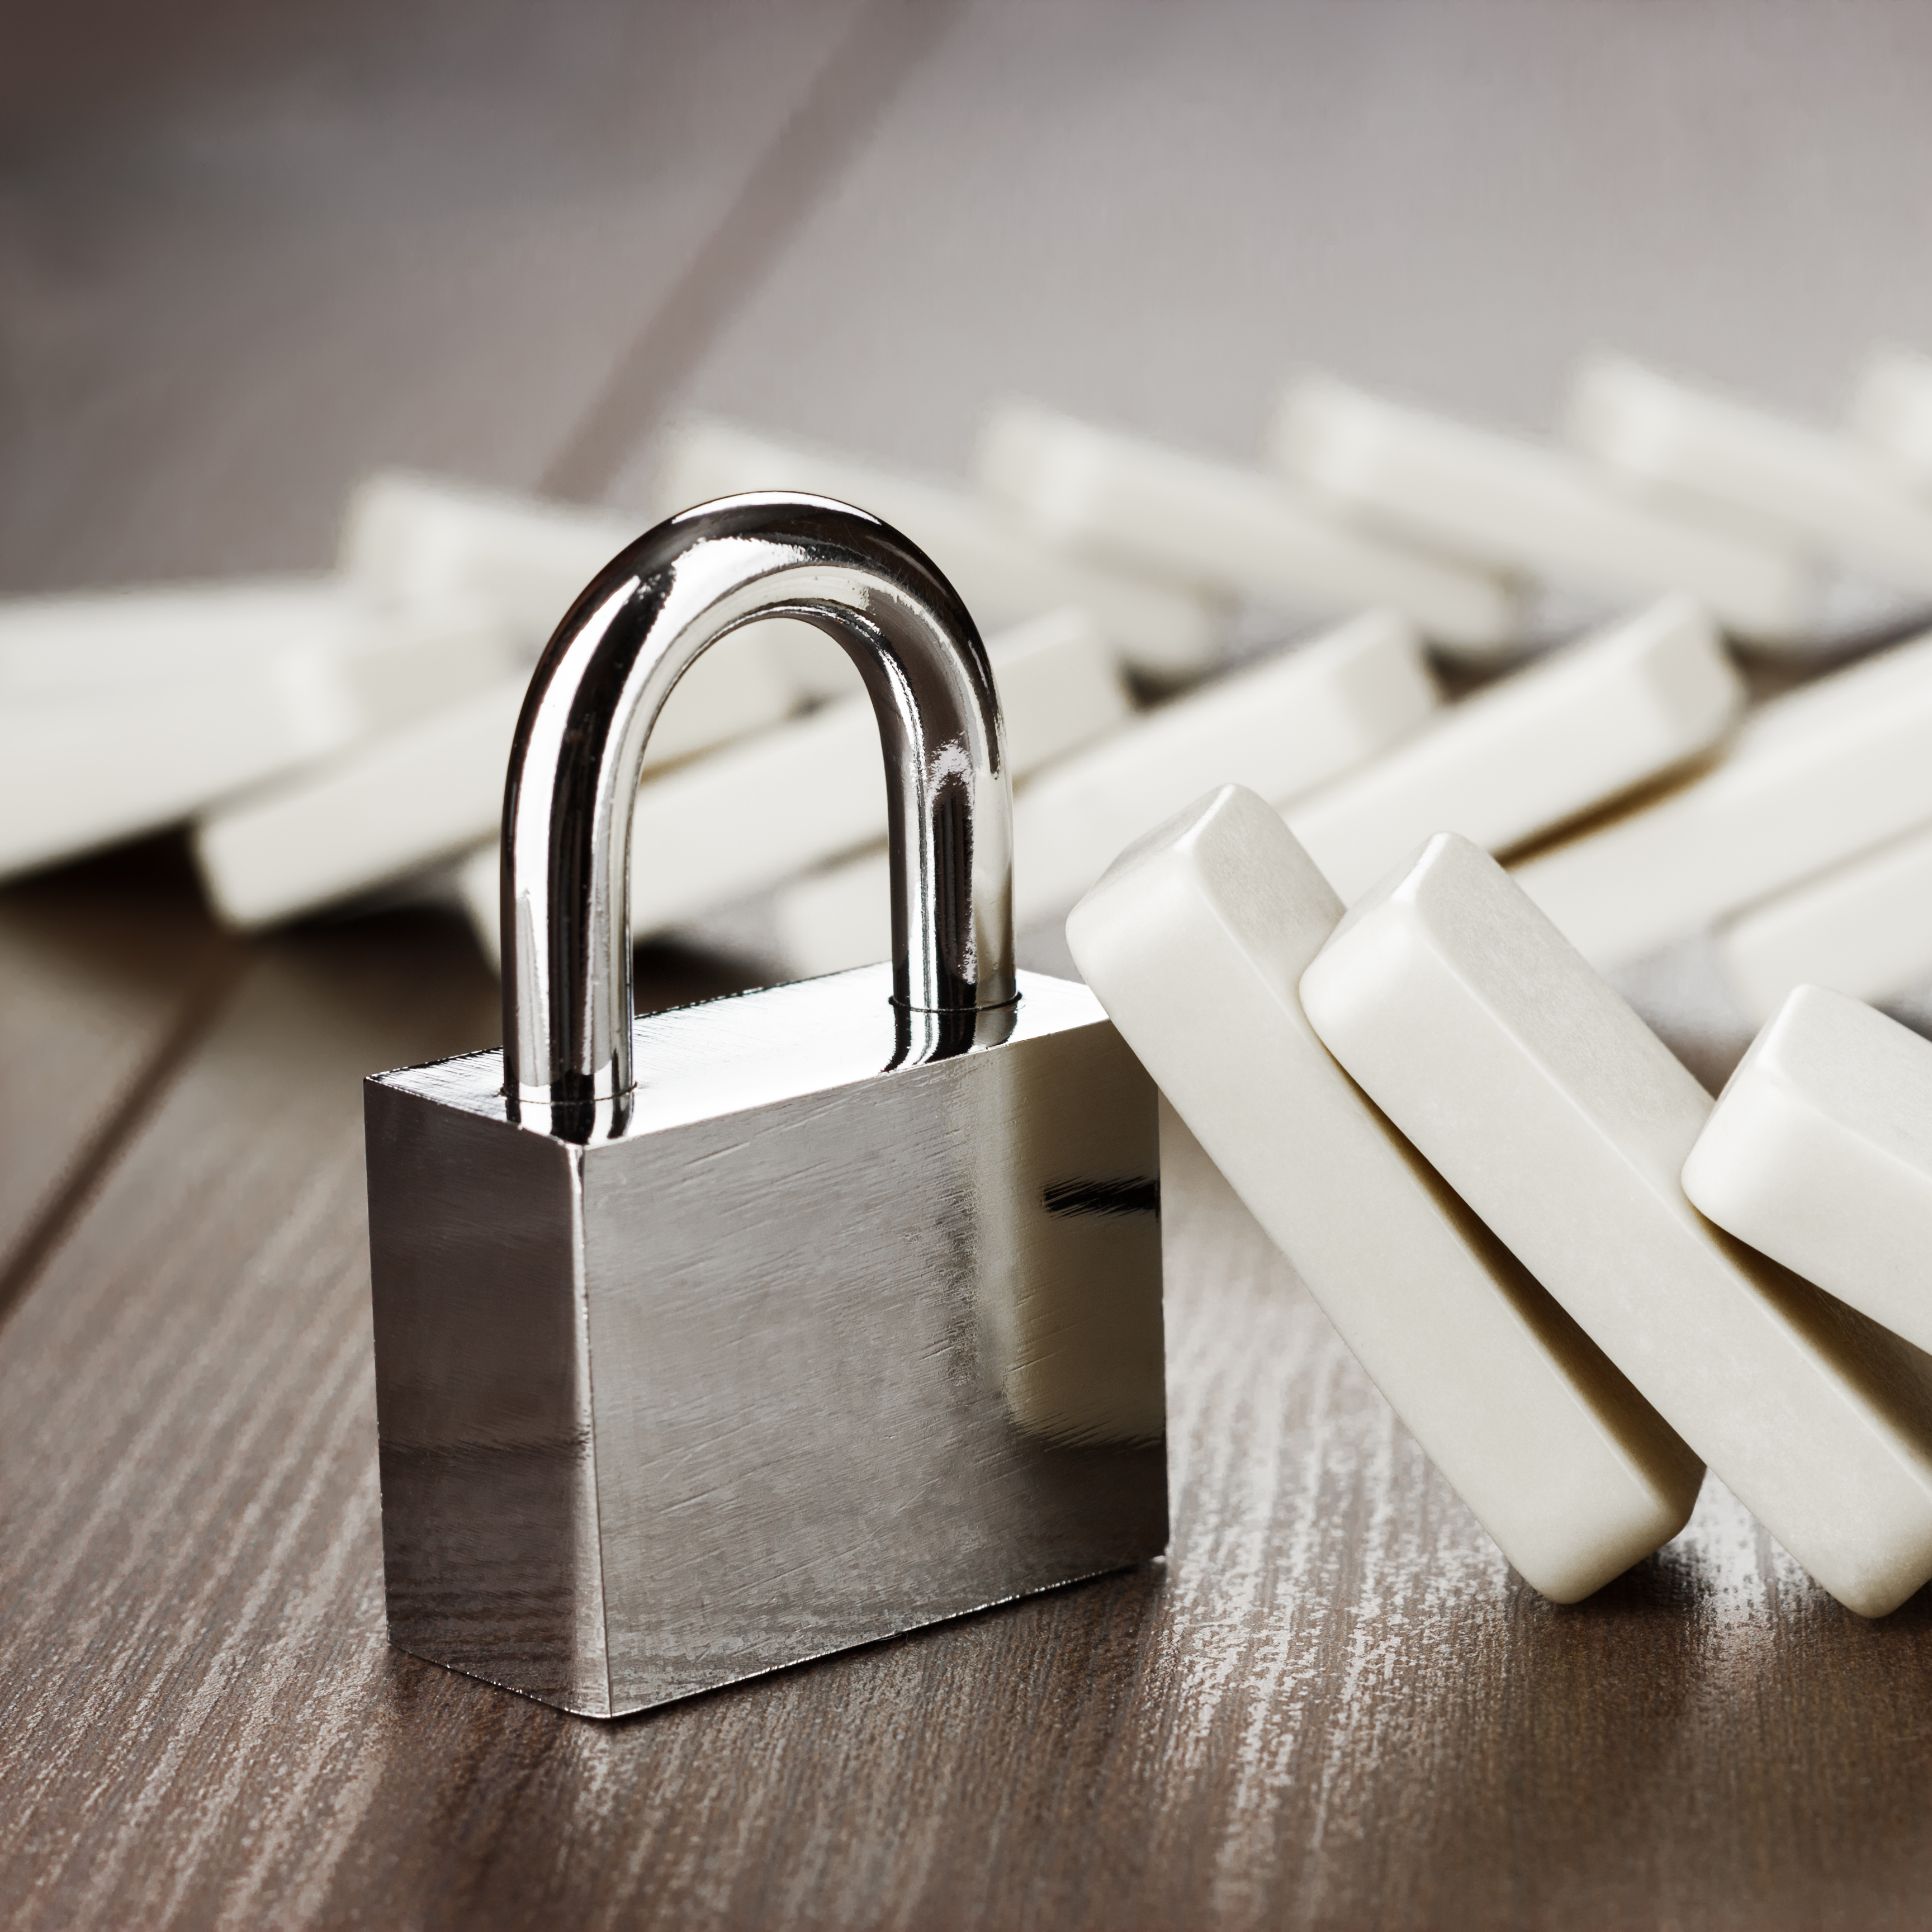 padlock standing still reliability concept on wooden table